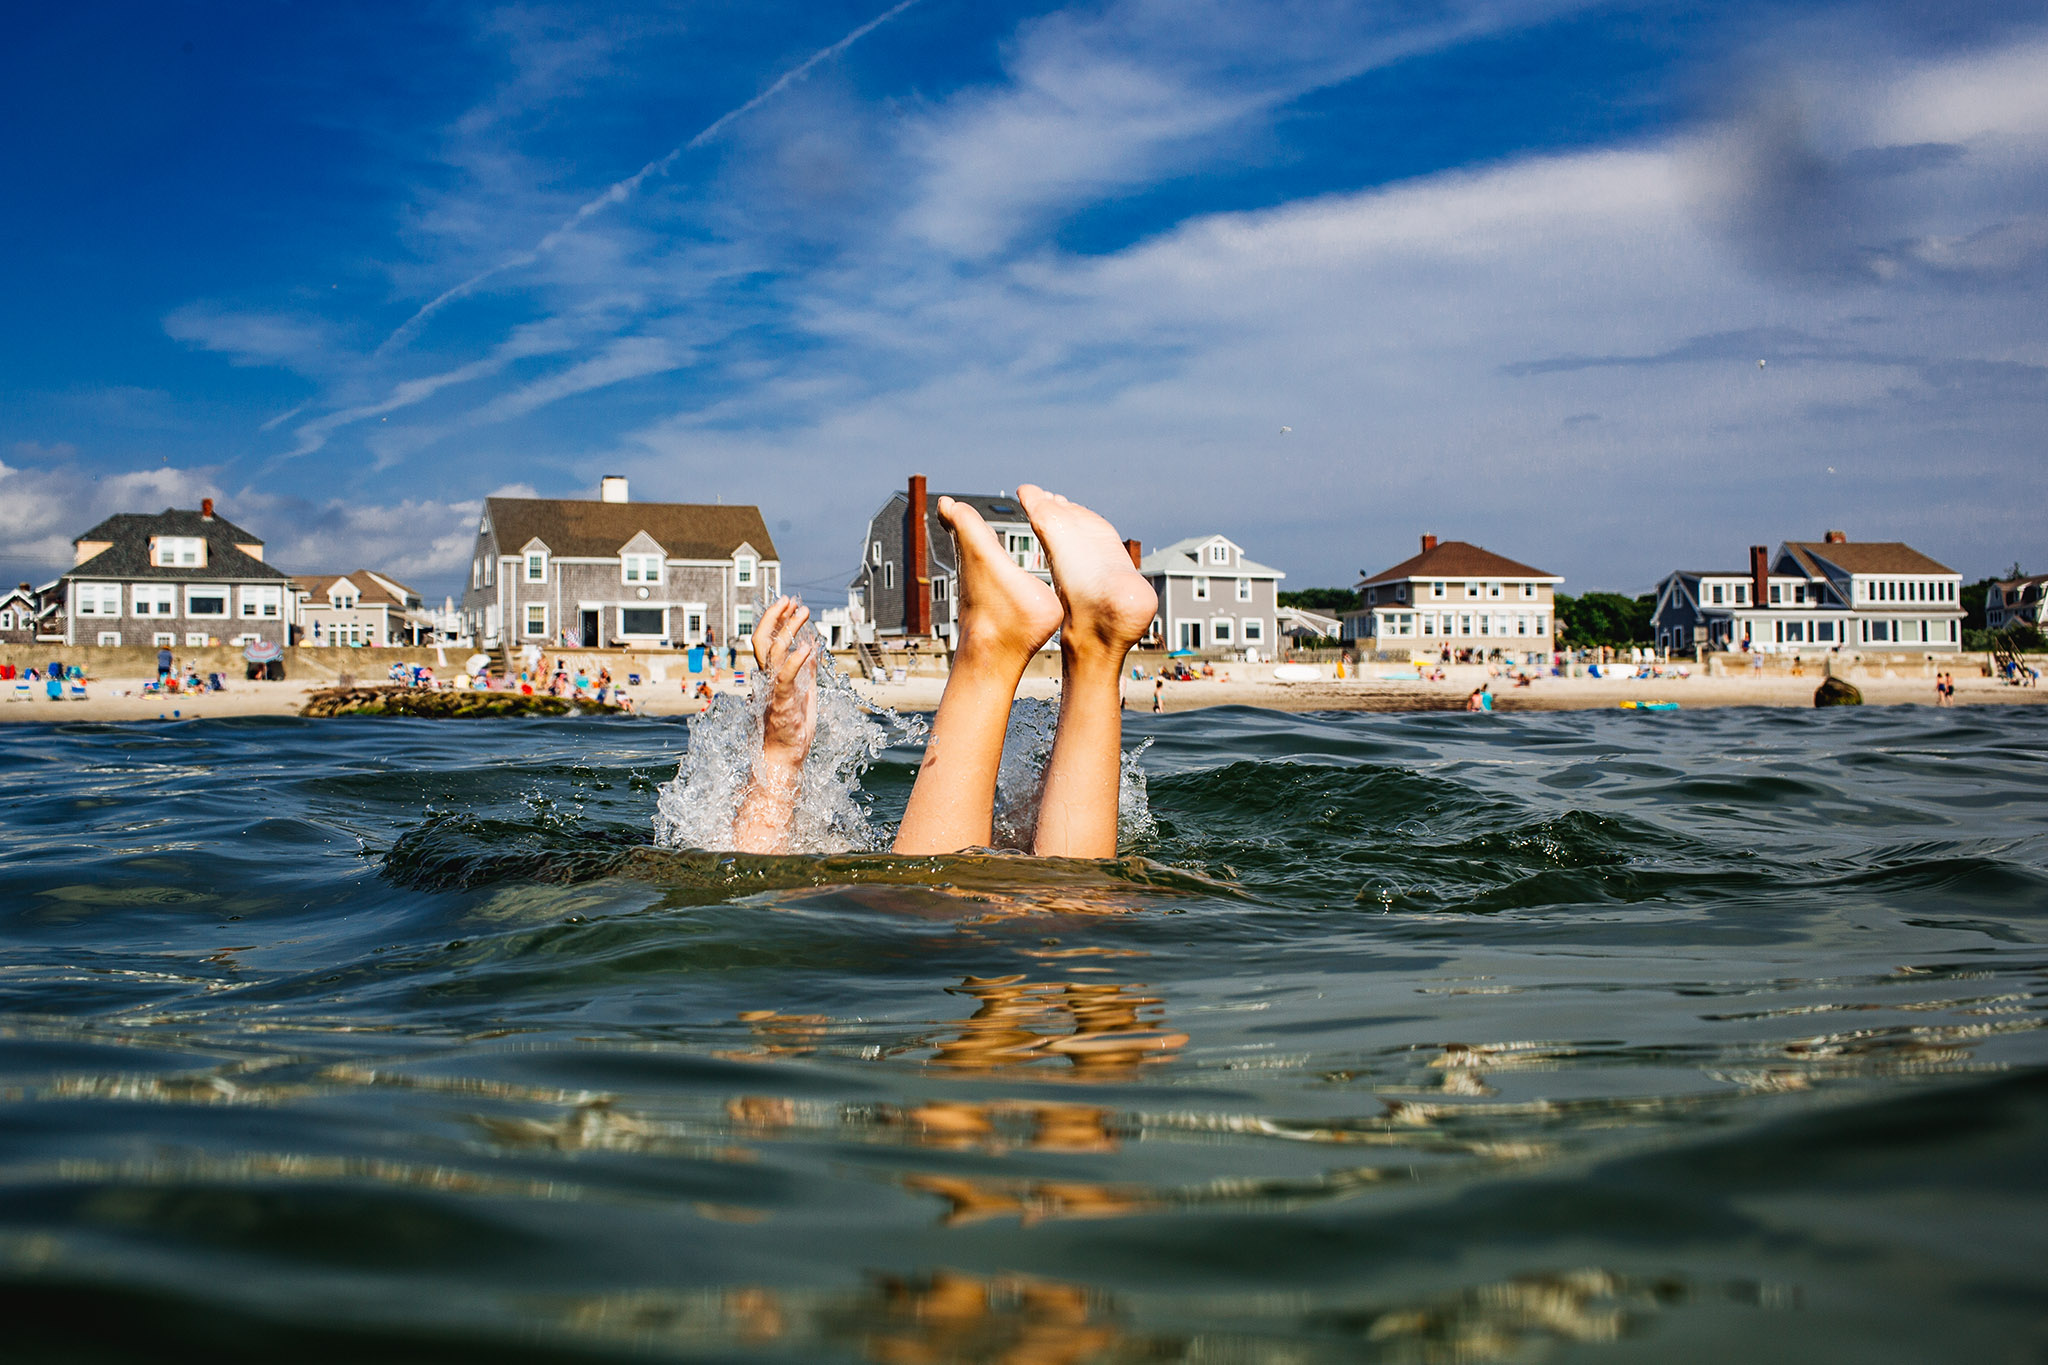 child's feet sticking up above water with beach homes in background